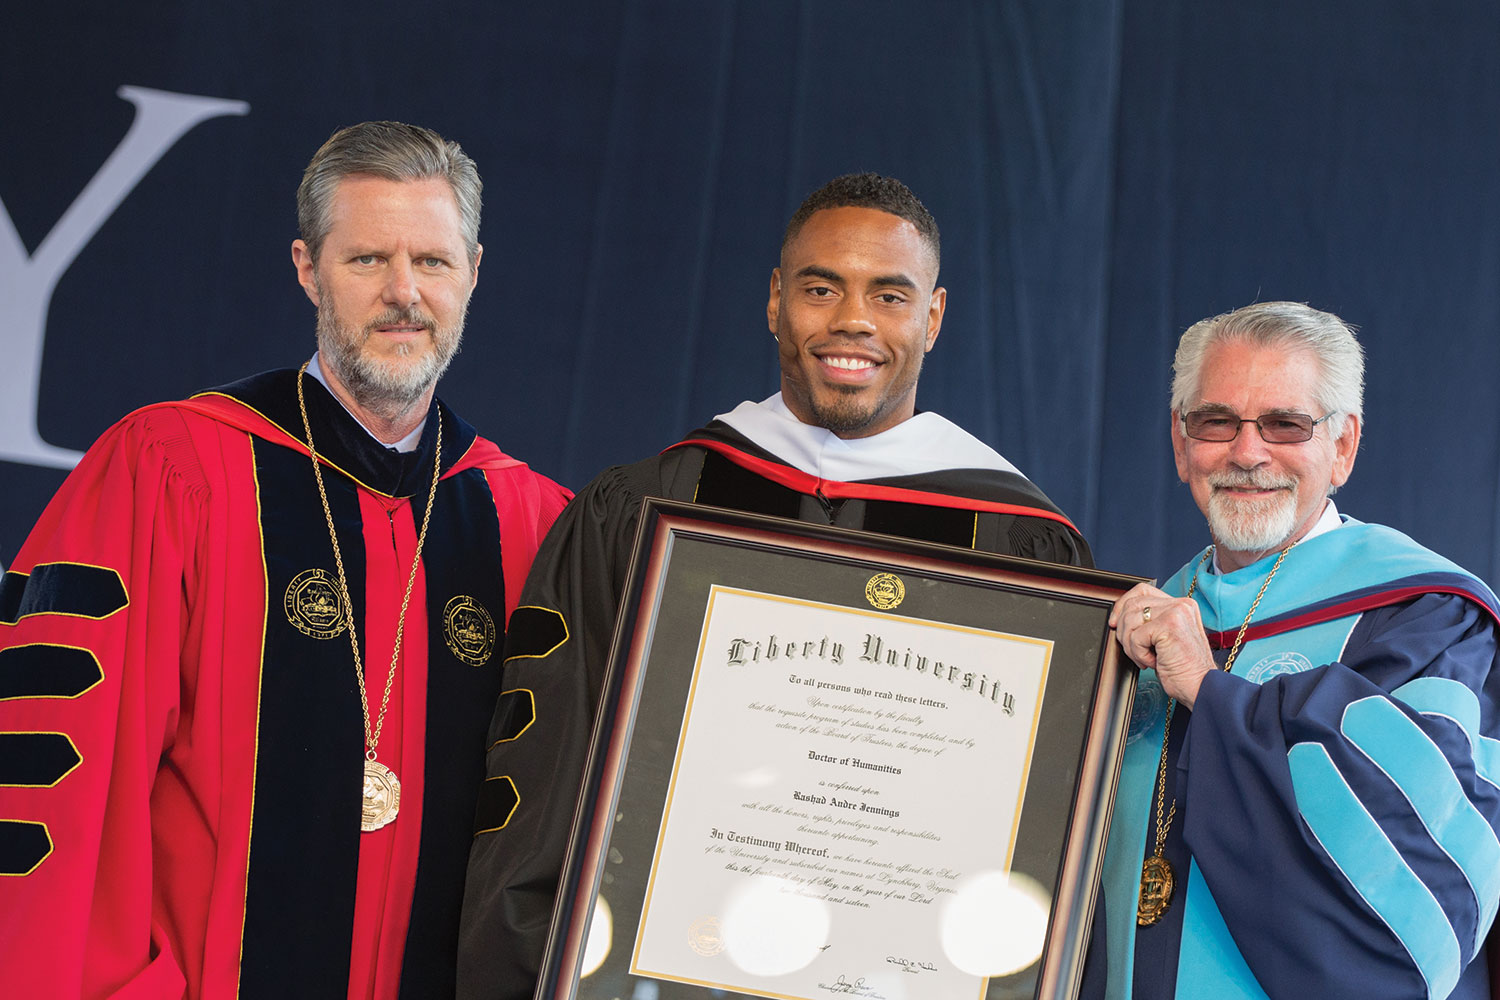 Rashad Jennings ('09), NFL running back and philanthropist, is awarded an Honorary Doctor of Humanities.